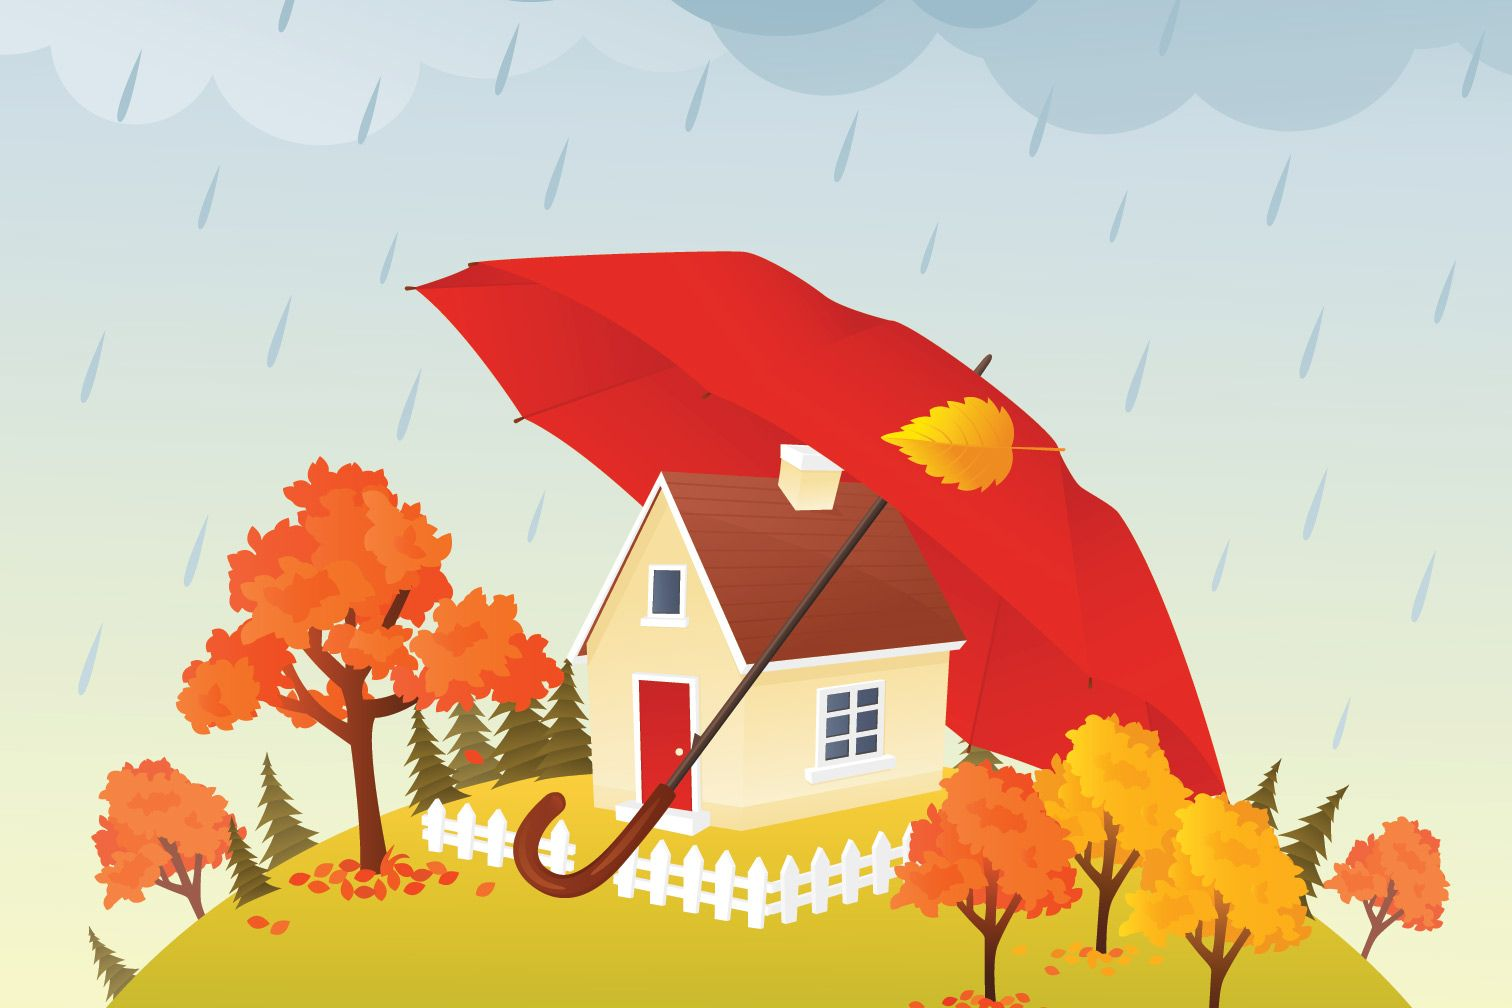 Homeowners insurance can cost you twice as much with bad